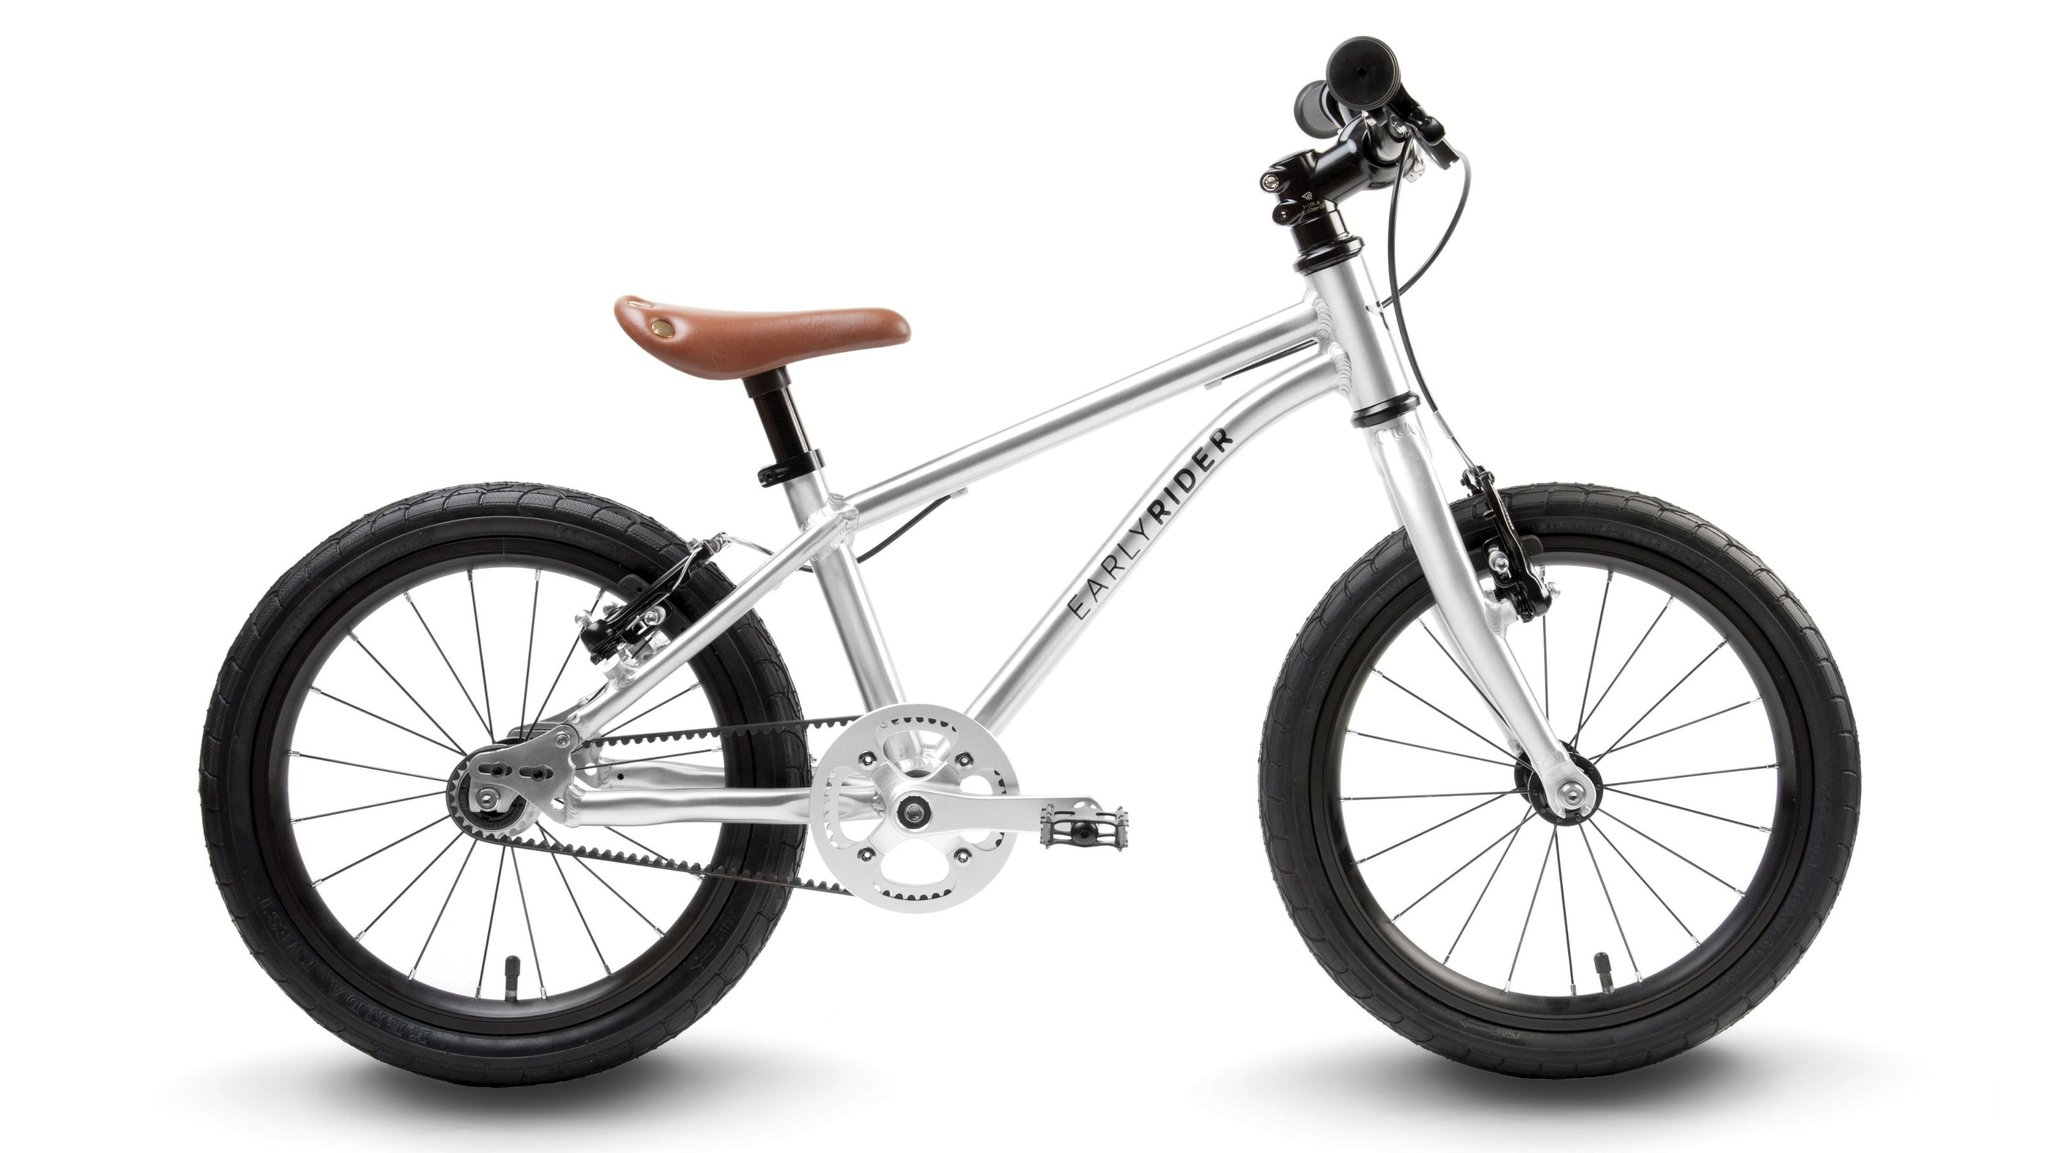 "dětské kolo Early Rider  Belter Urban 16 B-U16 Kinderrad 16"" 2019 brushed aluminum"